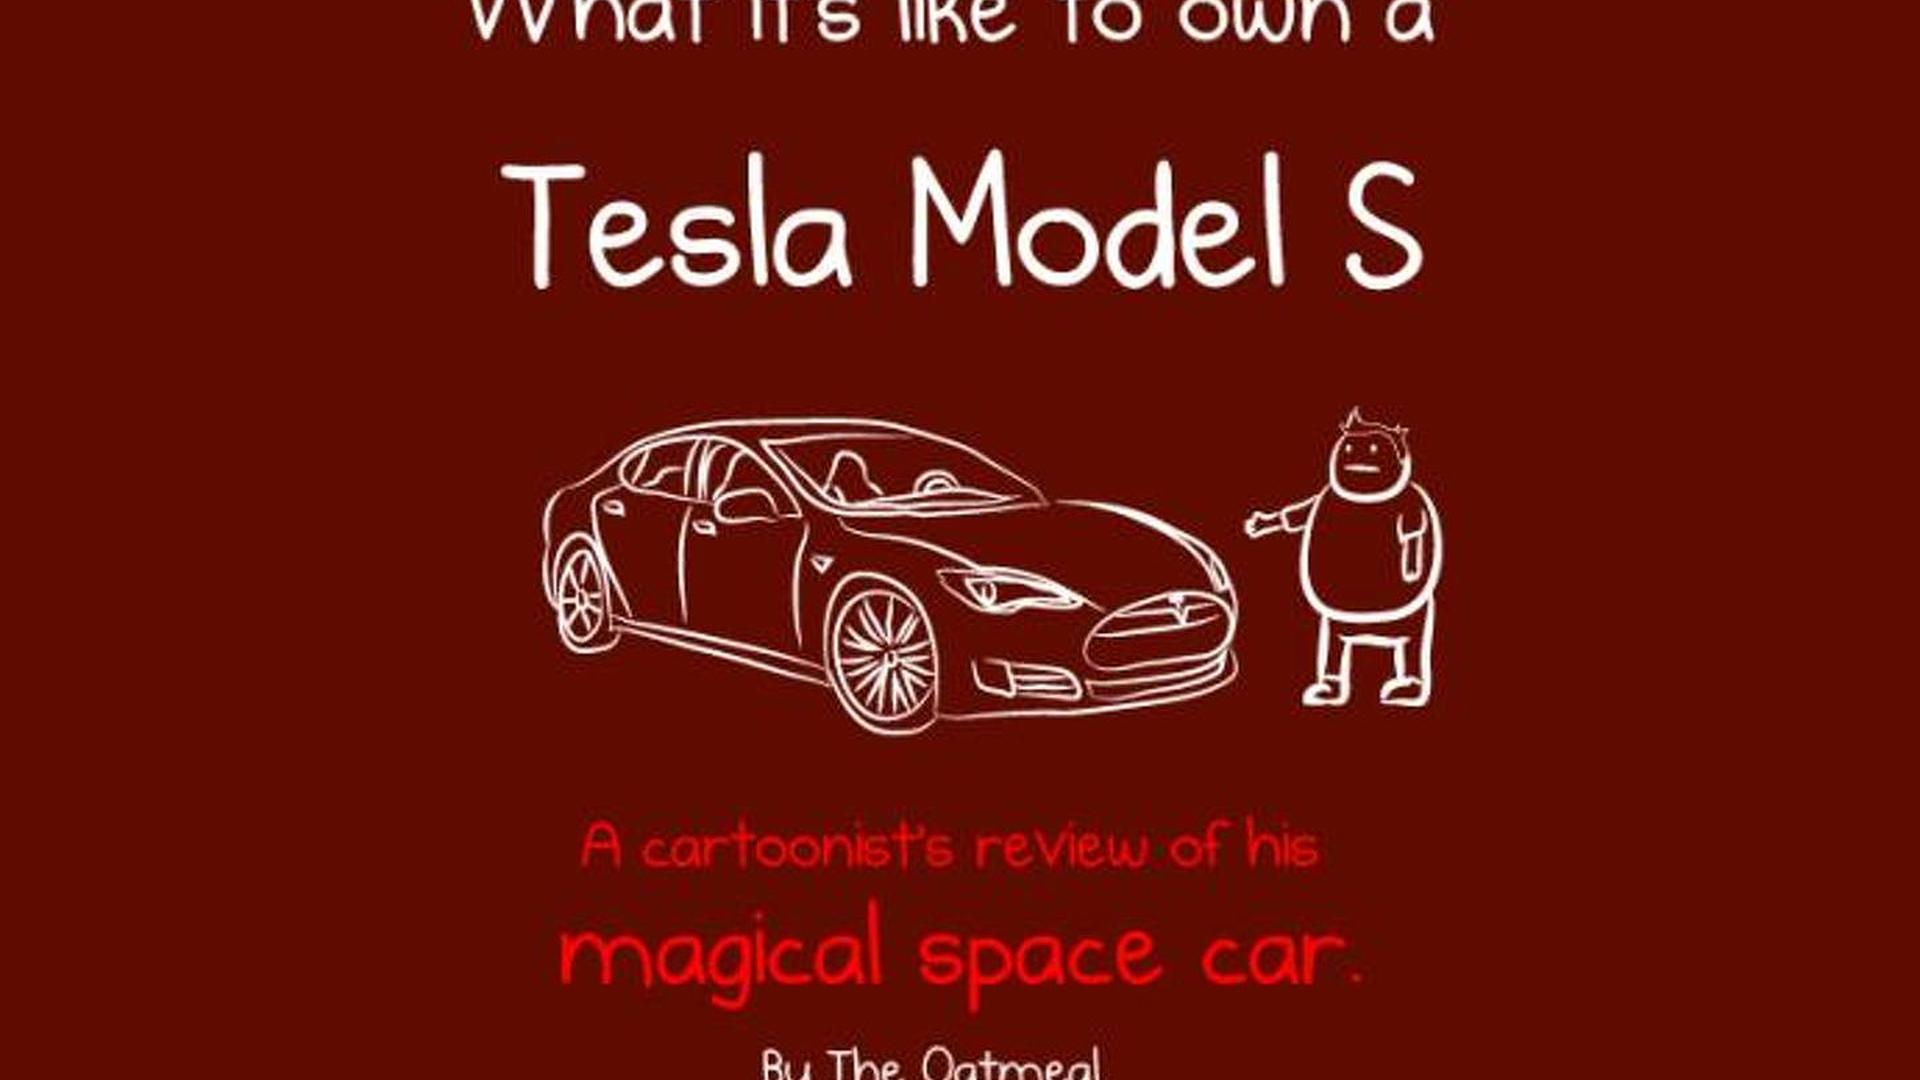 Cartoon Review What Its Like To Own A Tesla Model S